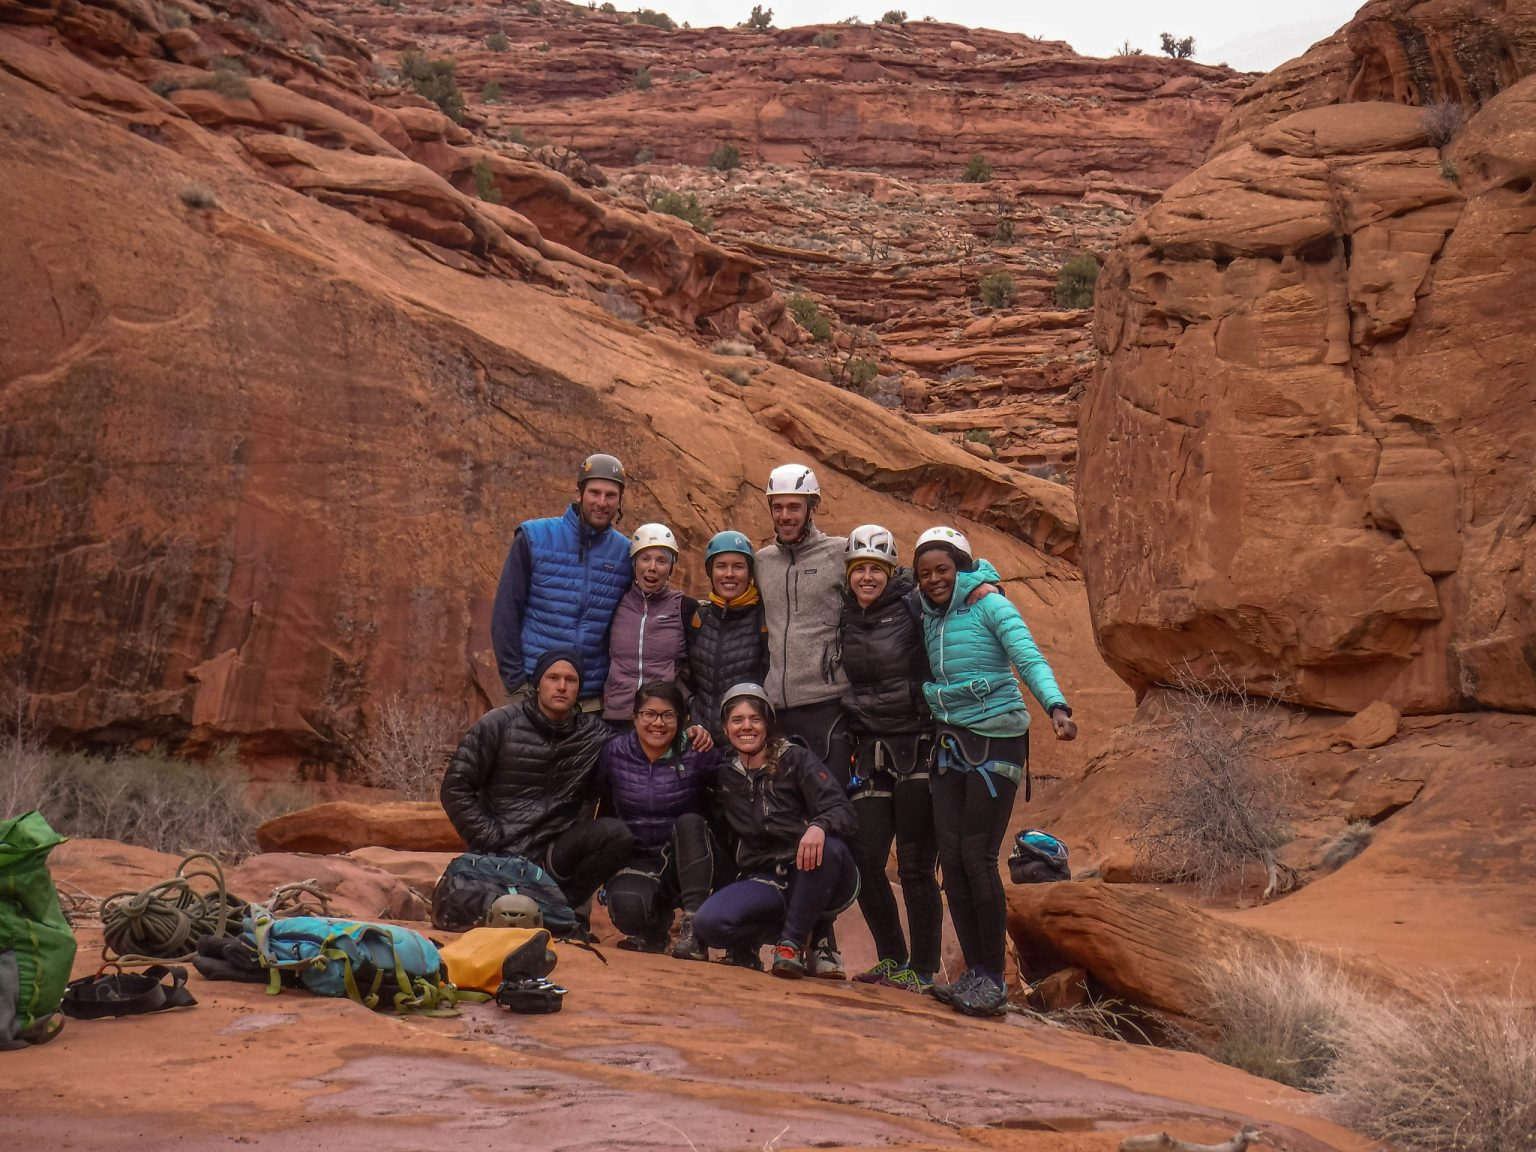 Group in Neon Canyon